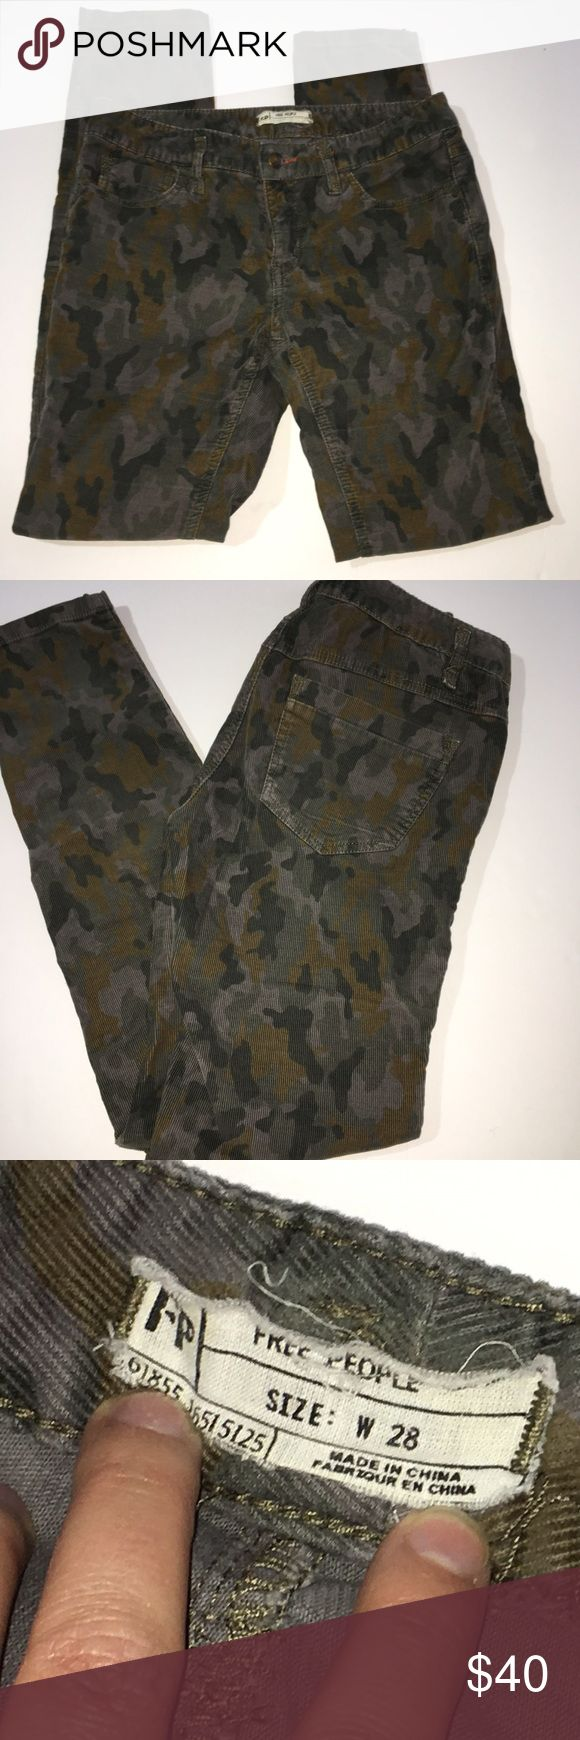 """Free People camo corduroy skinny pants EUC. Free People camp cords. Skinny fit. Soft, some stretch. Rise is approx 8"""", inseam approx 31.  🌸automatically save when you bundle or make an offer🌸 Free People Pants Skinny"""